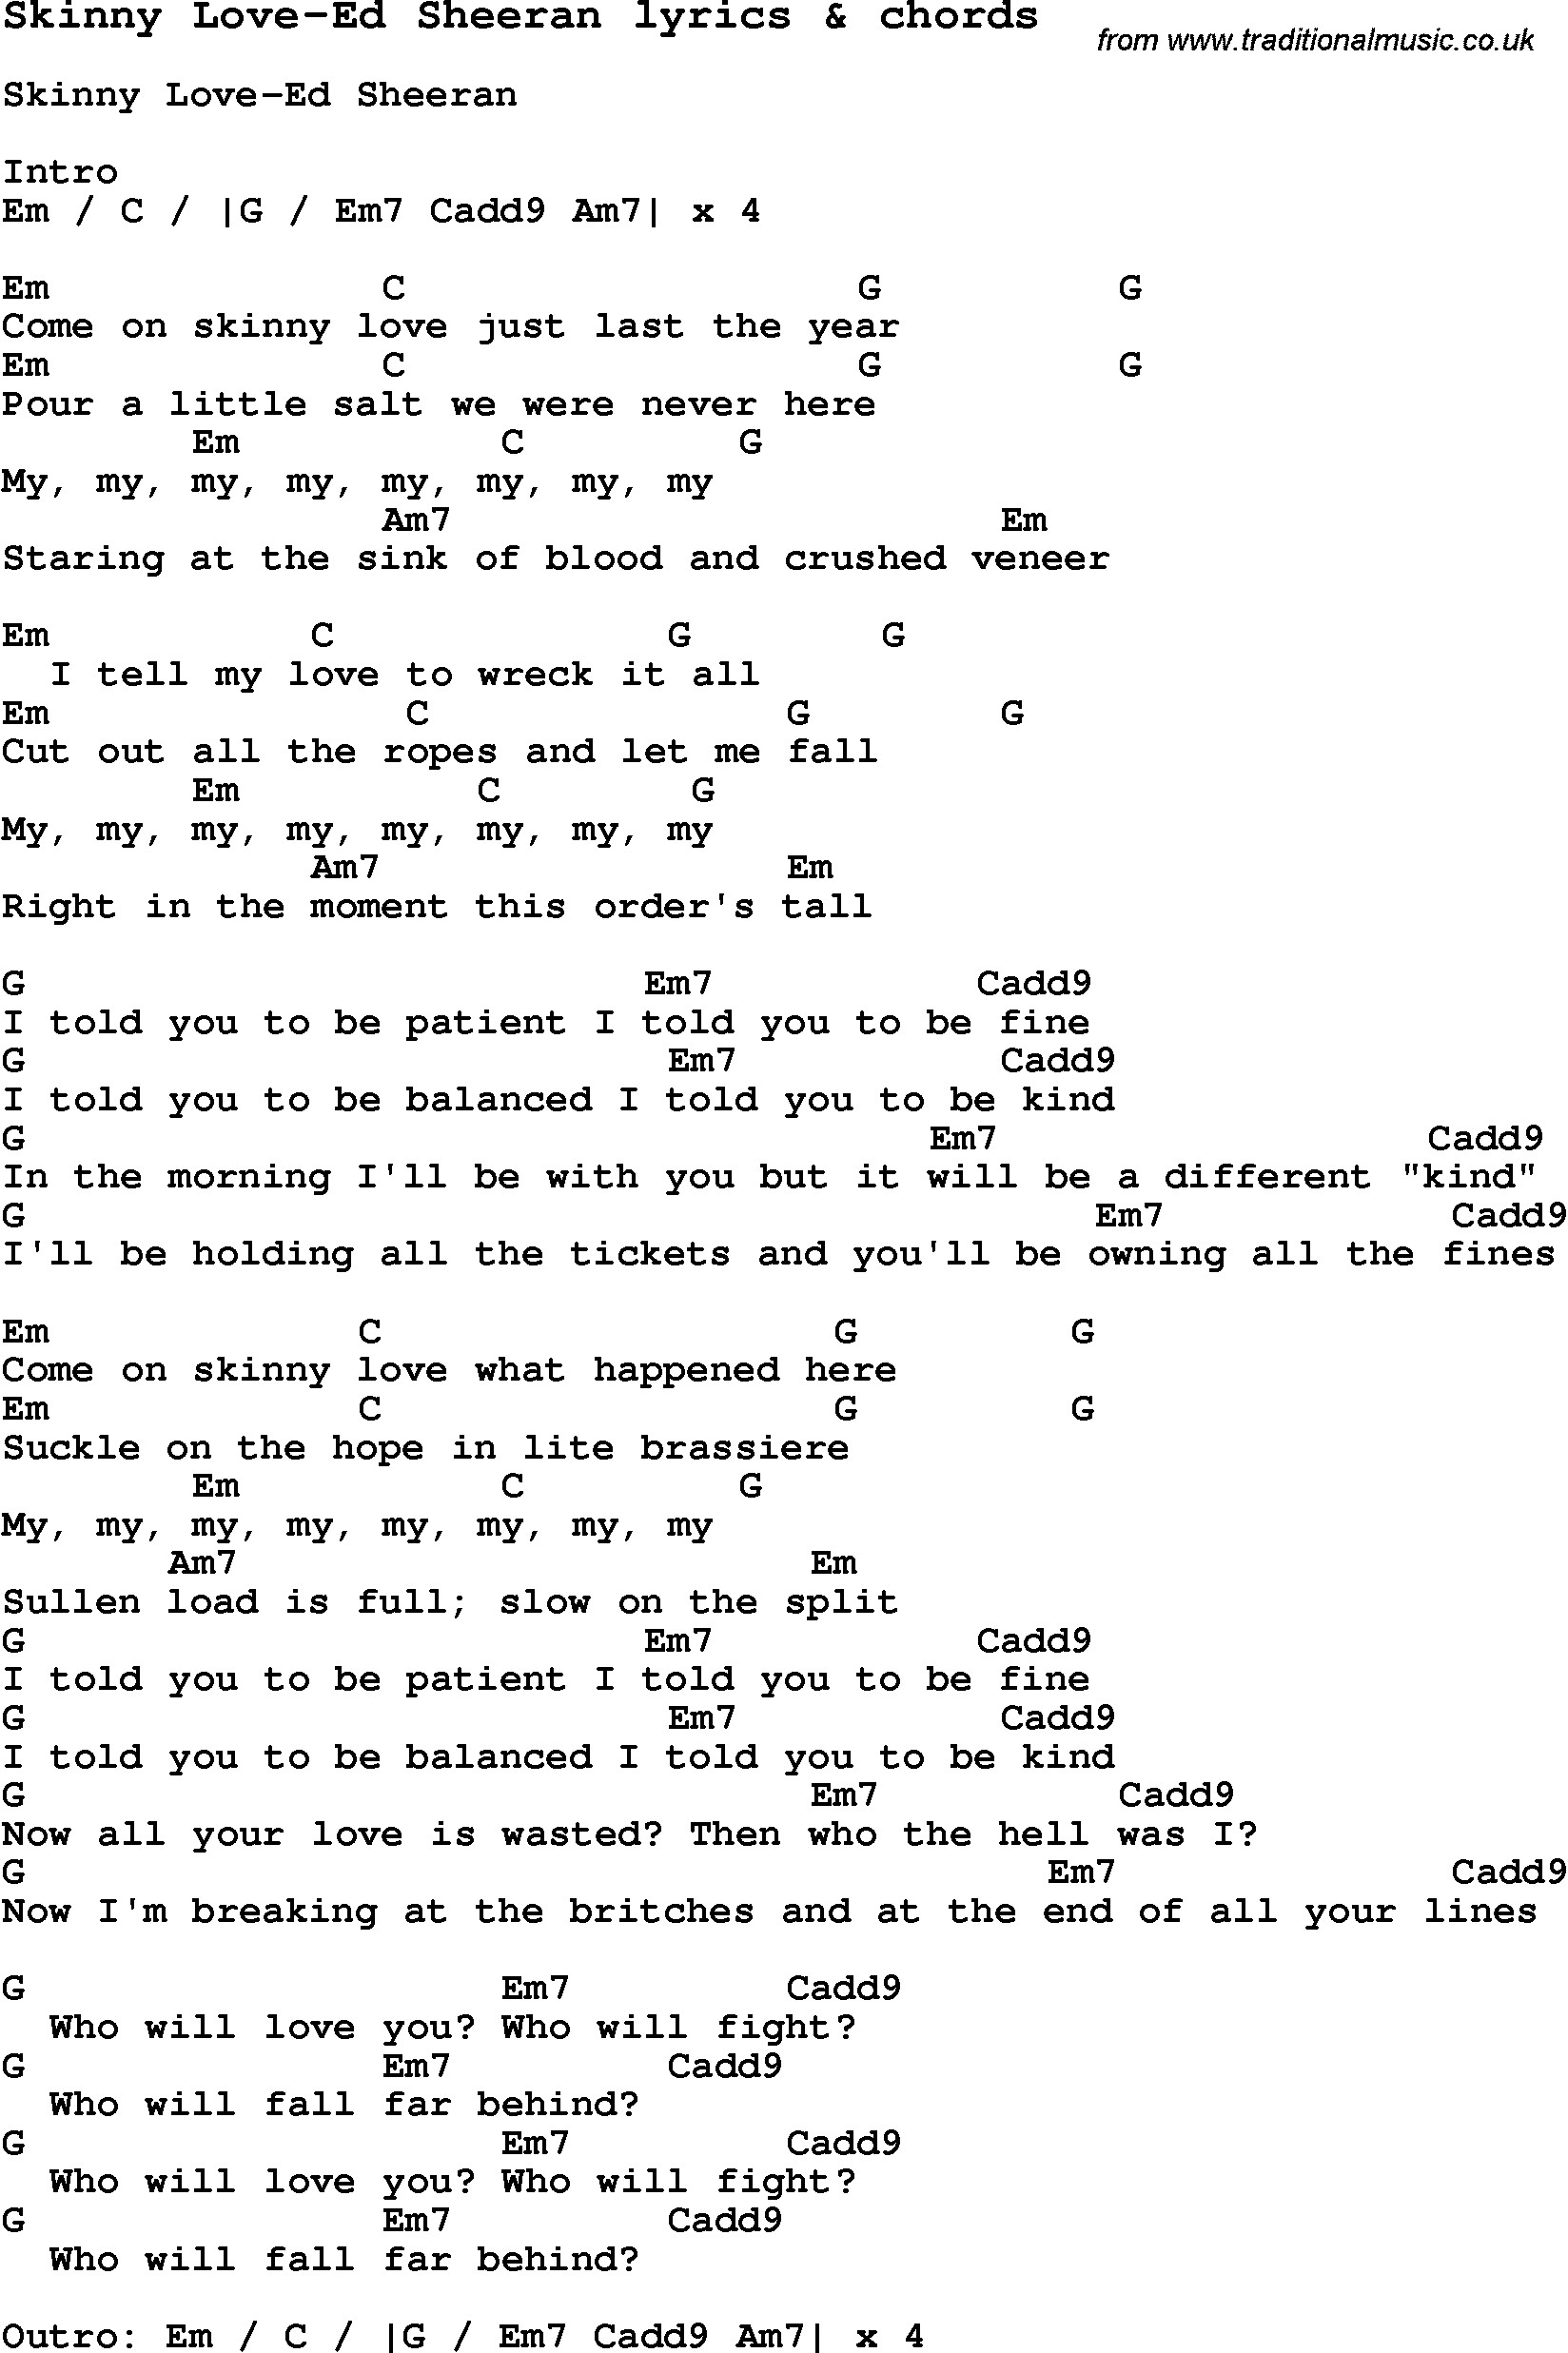 Love Song Lyrics for: Skinny Love-Ed Sheeran with chords for Ukulele, Guitar